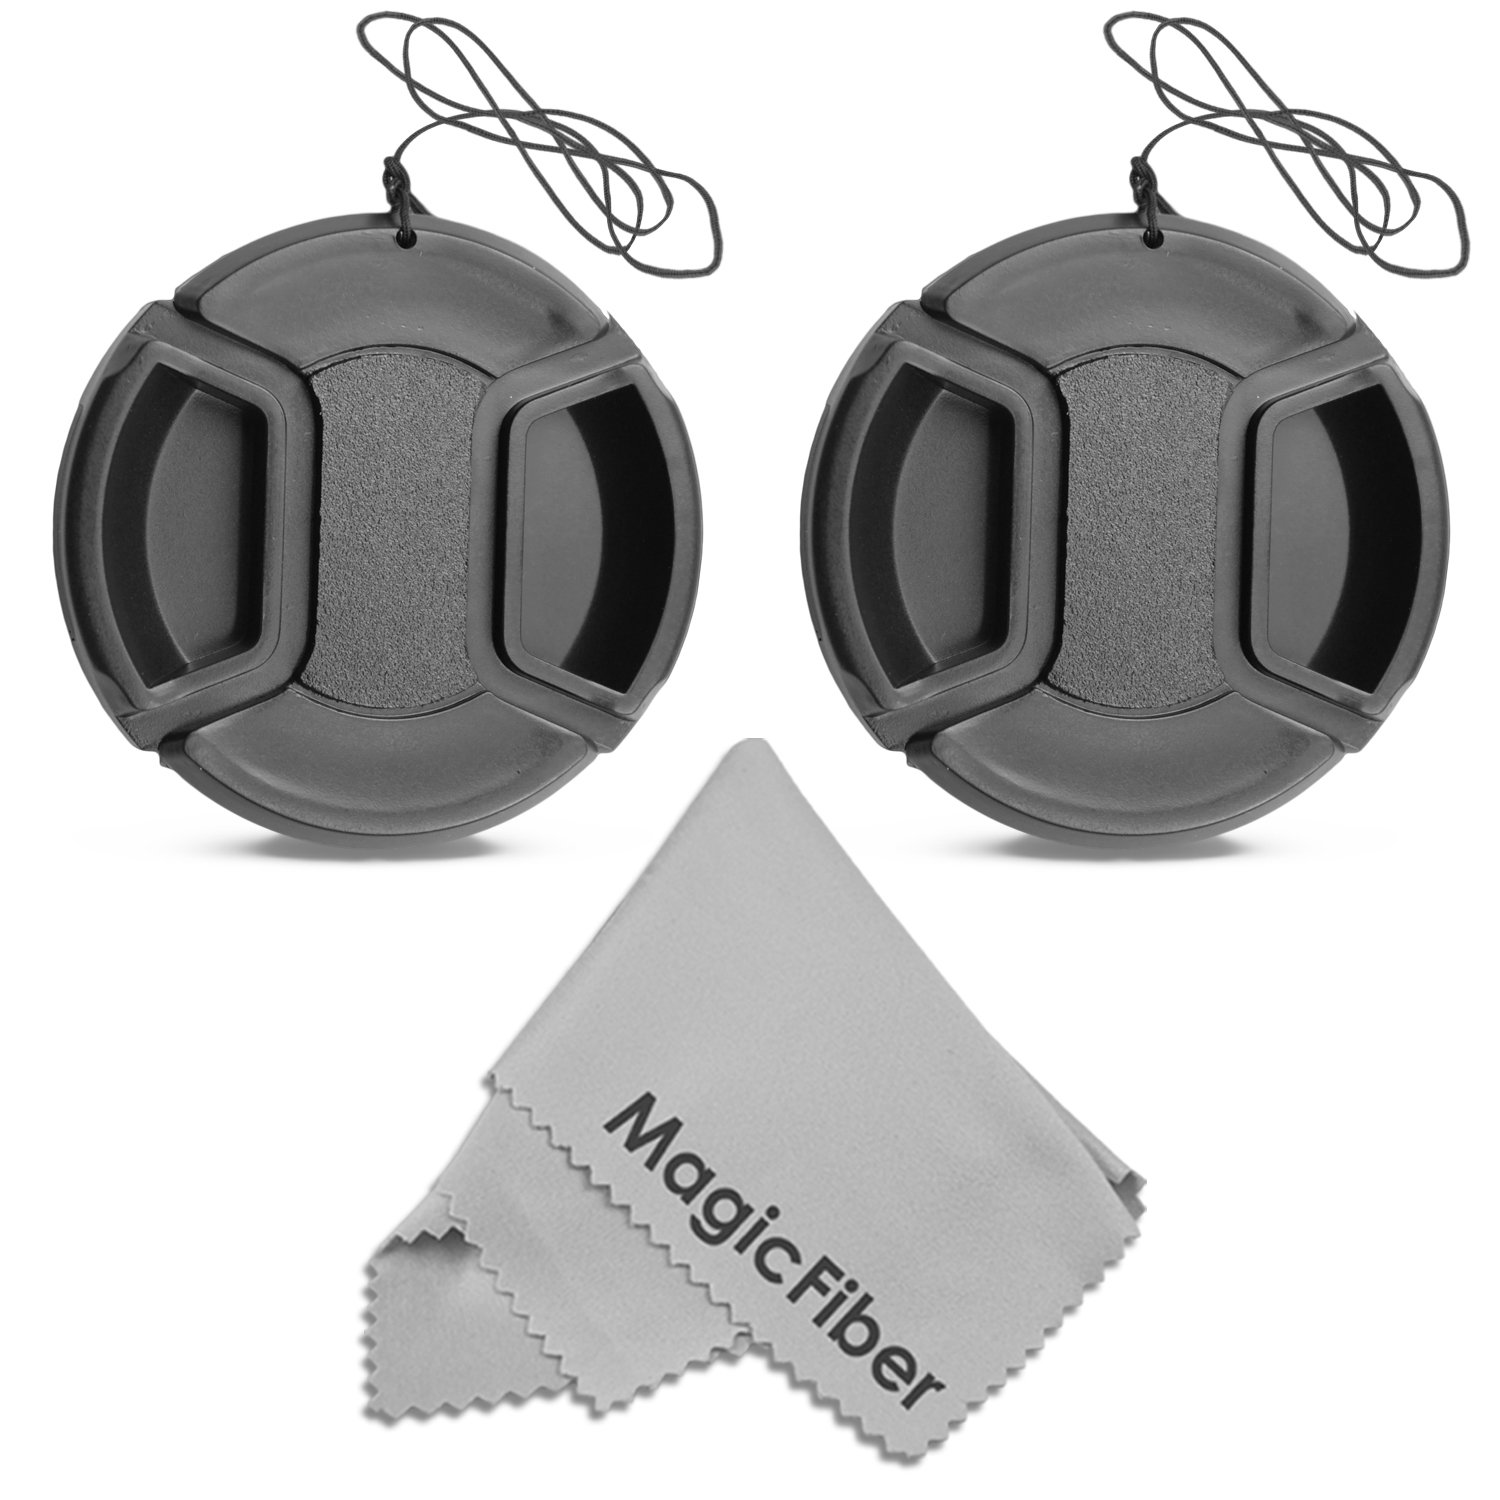 (2-Pack) 52mm Snap-On Center Pinch Lens Cap with Holder Leash, Camera Lens Protection Cover for 52mm Threaded Lenses Altura Photo KX0344